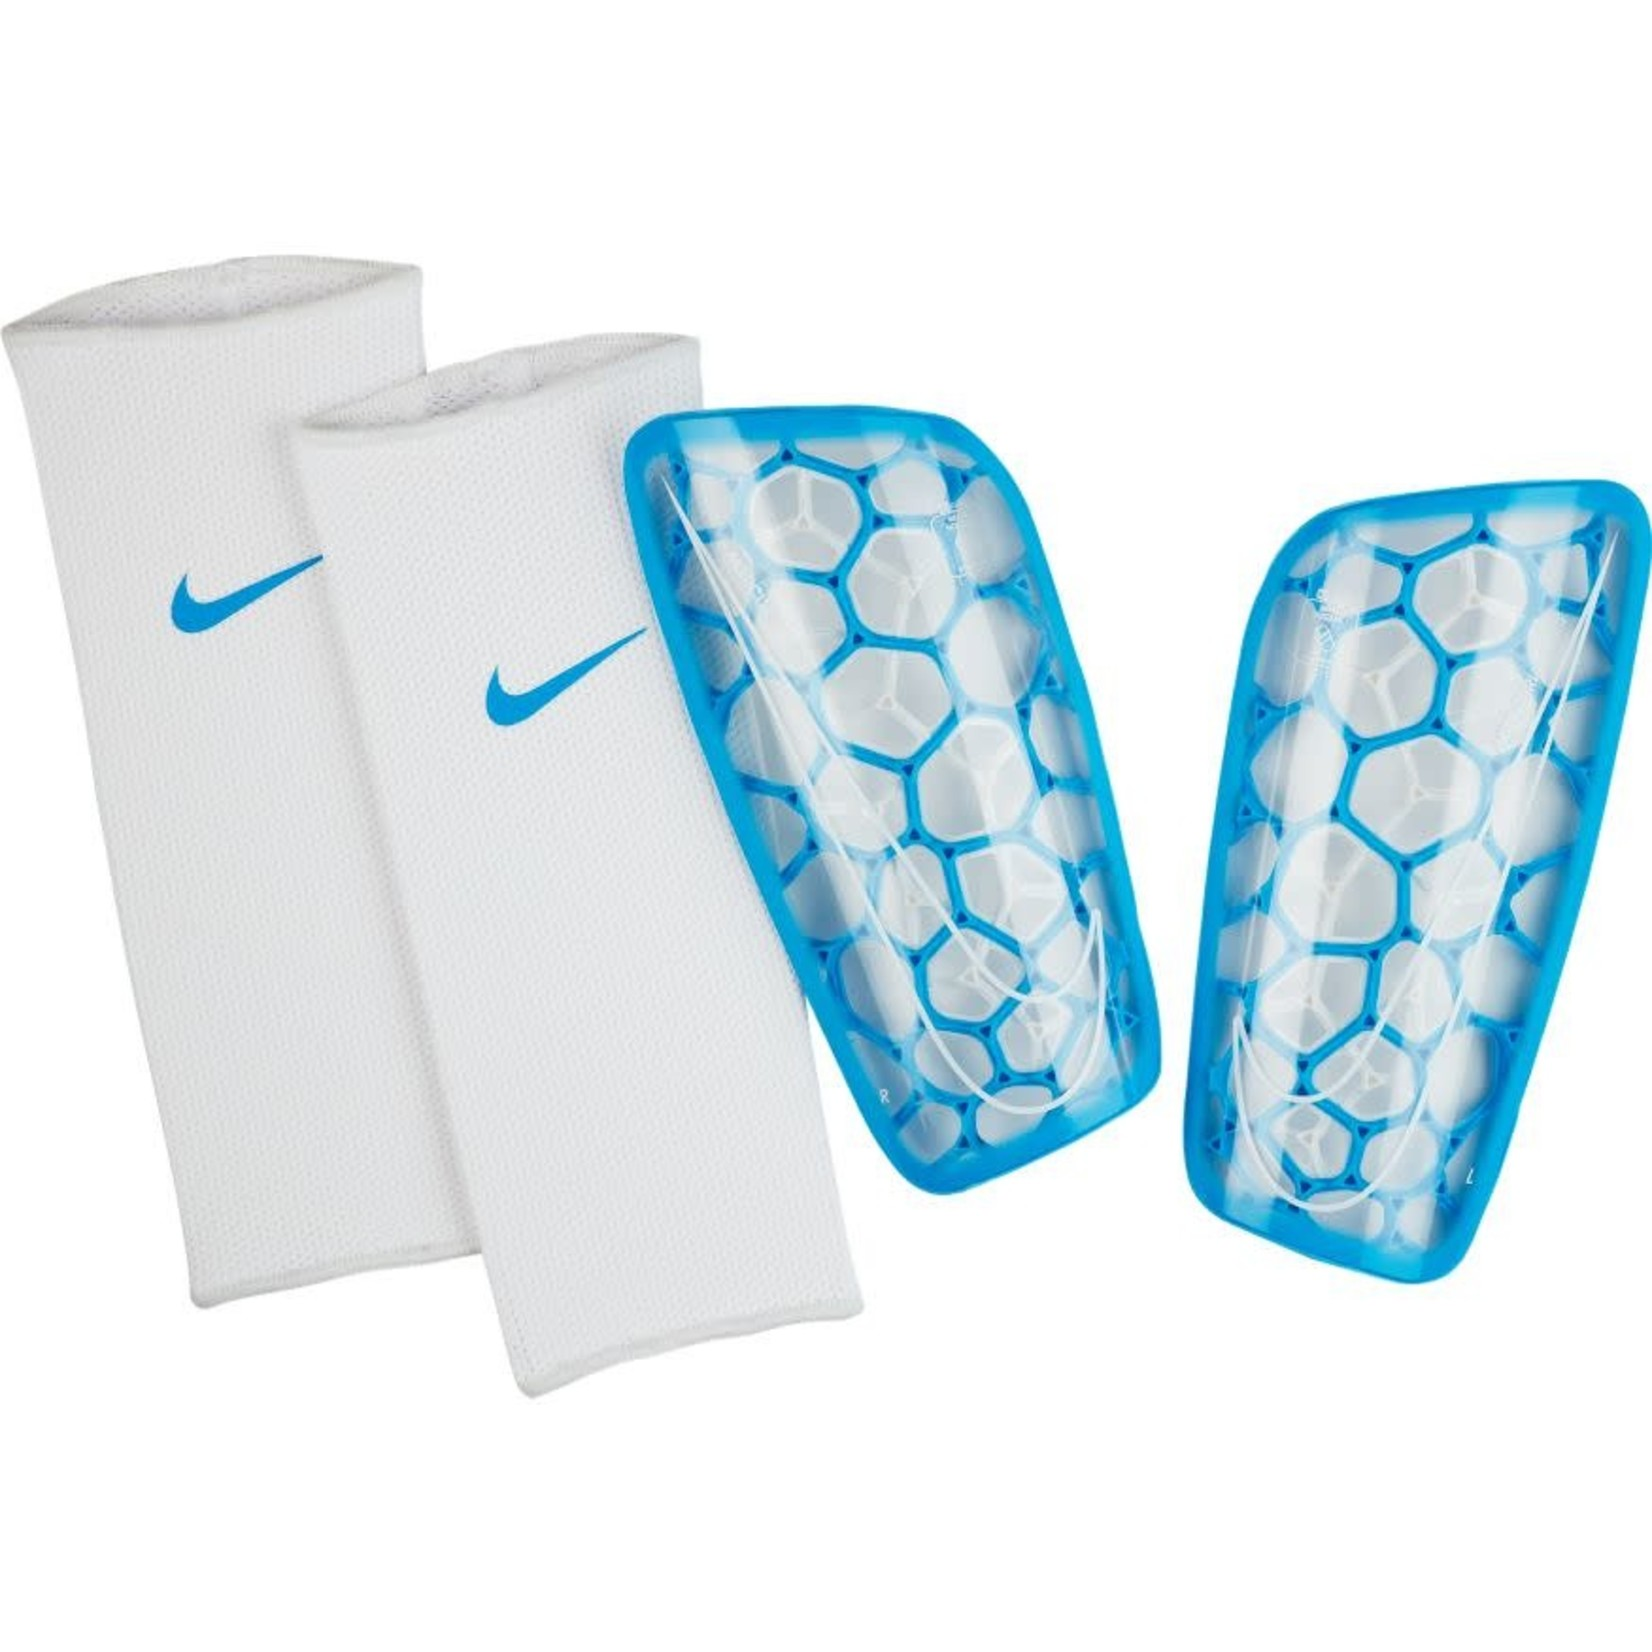 NIKE MERCURIAL FLYLITE GUARDS (BLUE/WHITE)